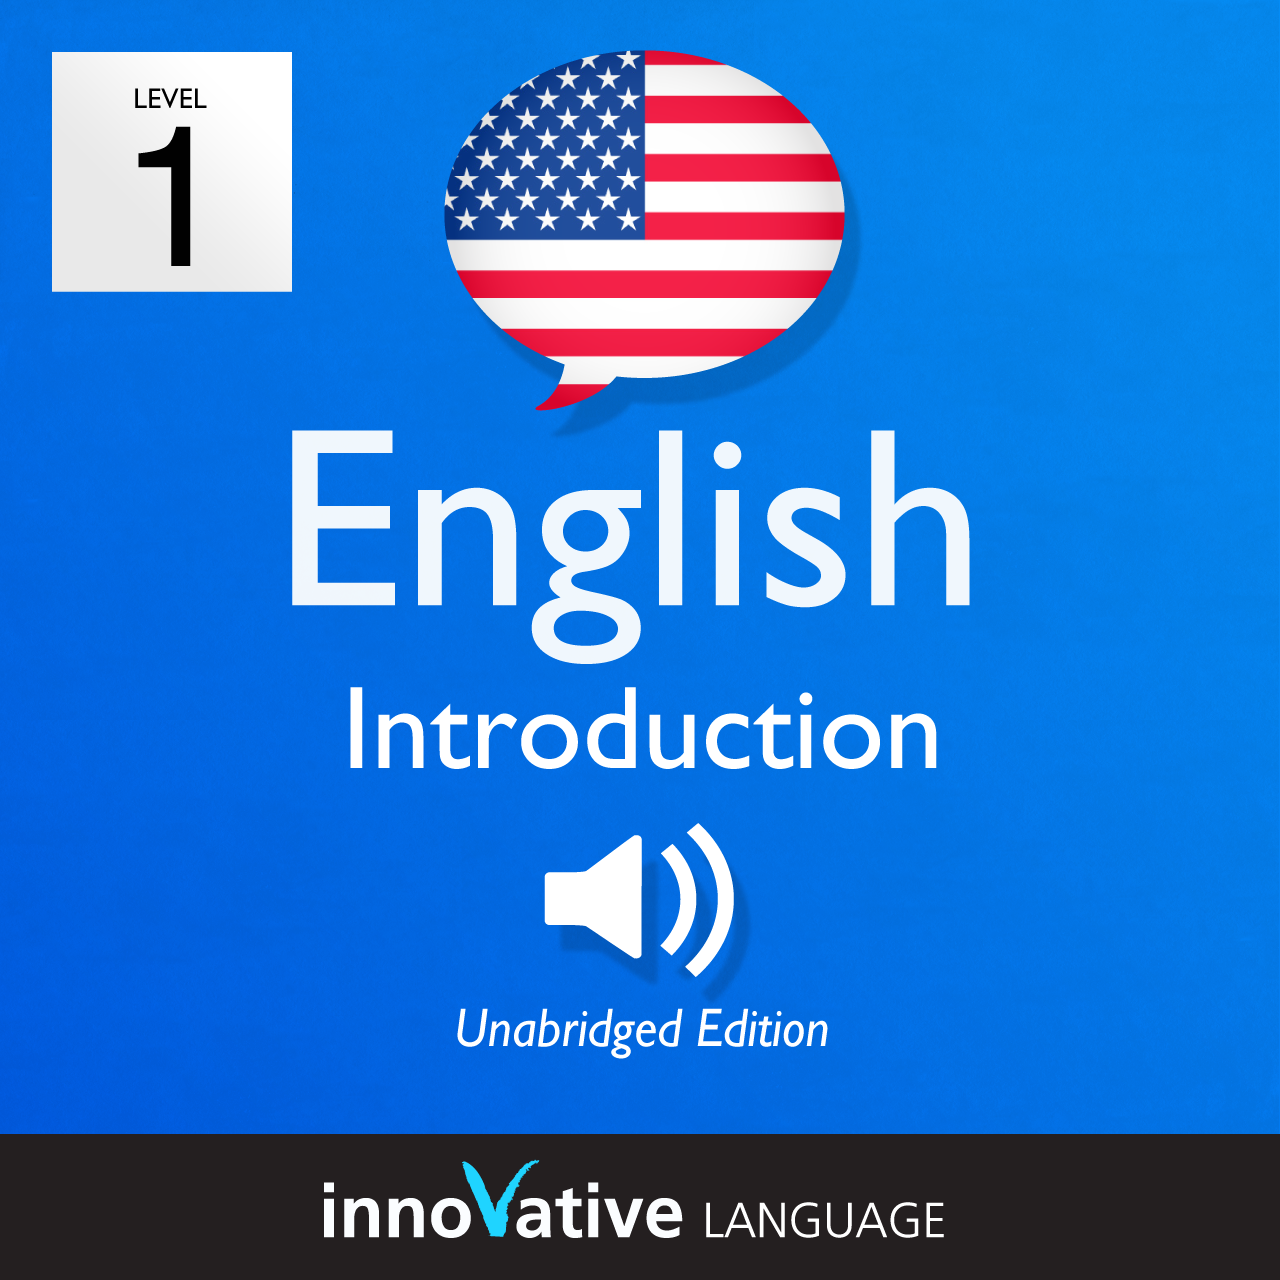 [Audiobook] Learn English - Level 1: Introduction to English, Volume 1